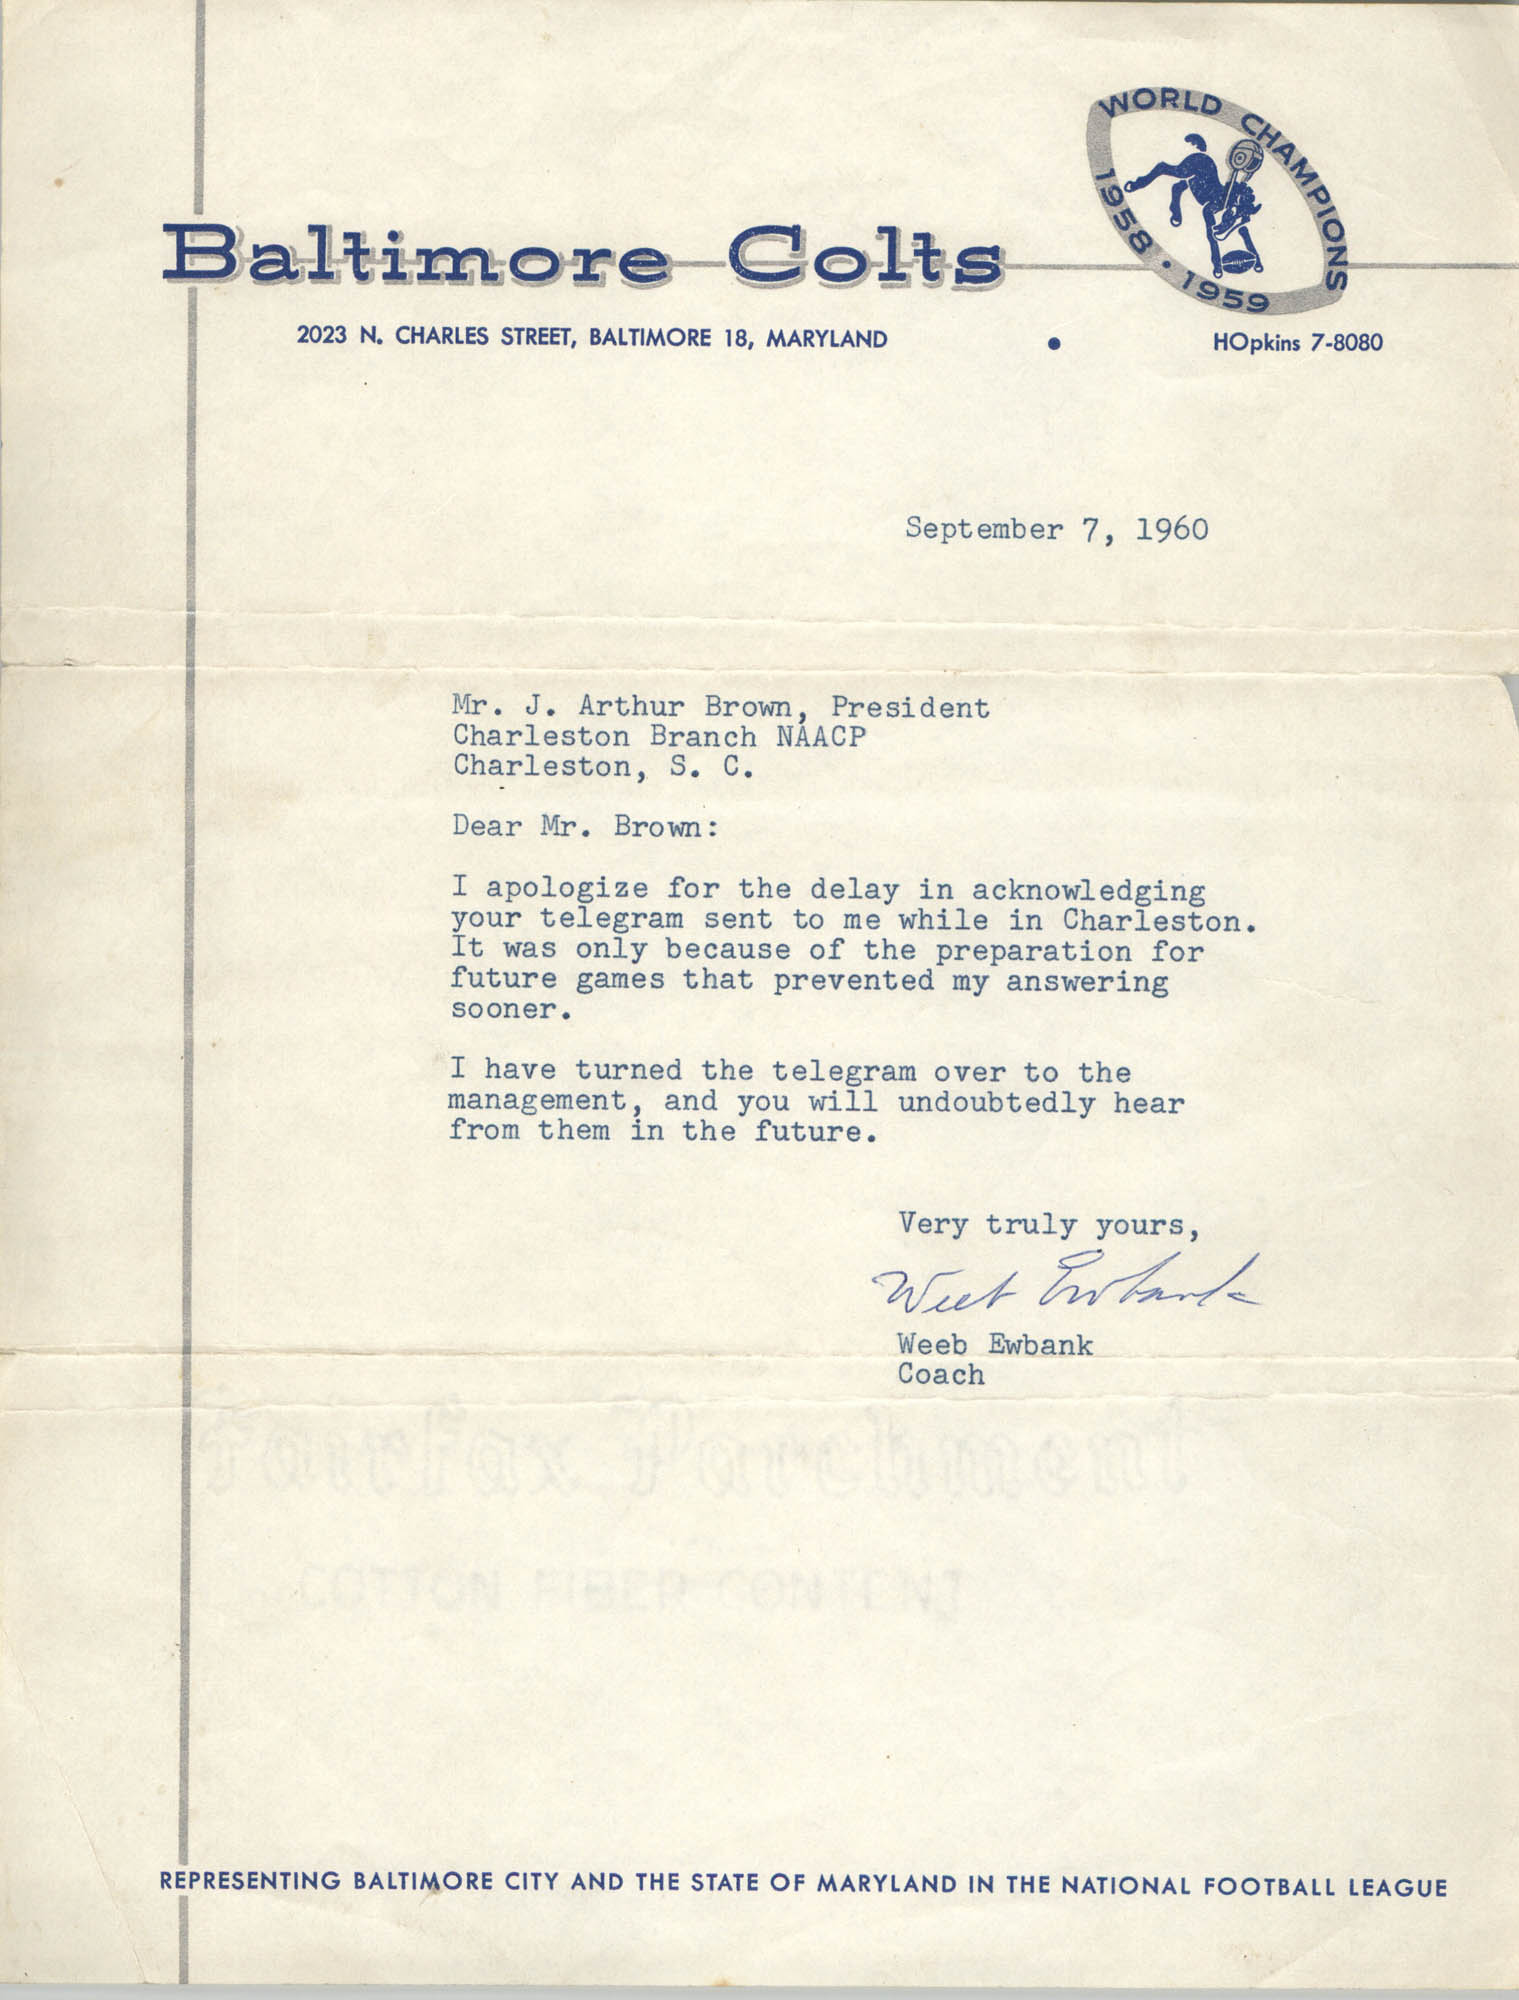 Letter from Weeb Ewbank to J. Arthur Brown, September 7, 1960